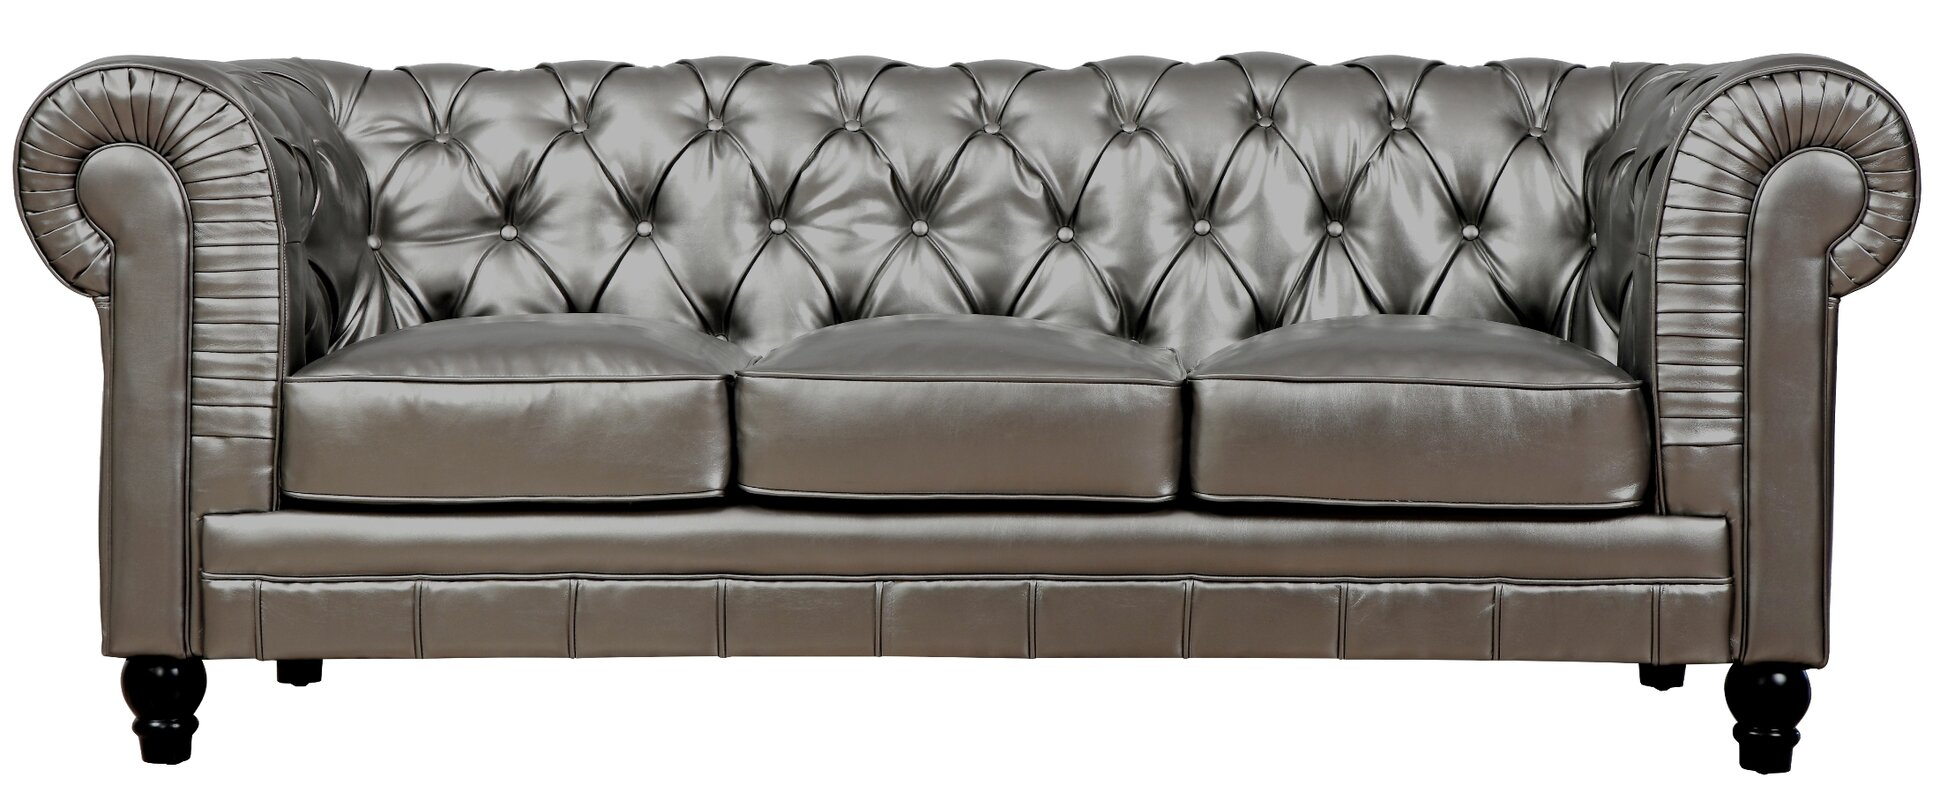 "Mason 83"" Leather Chesterfield Sofa & Reviews"